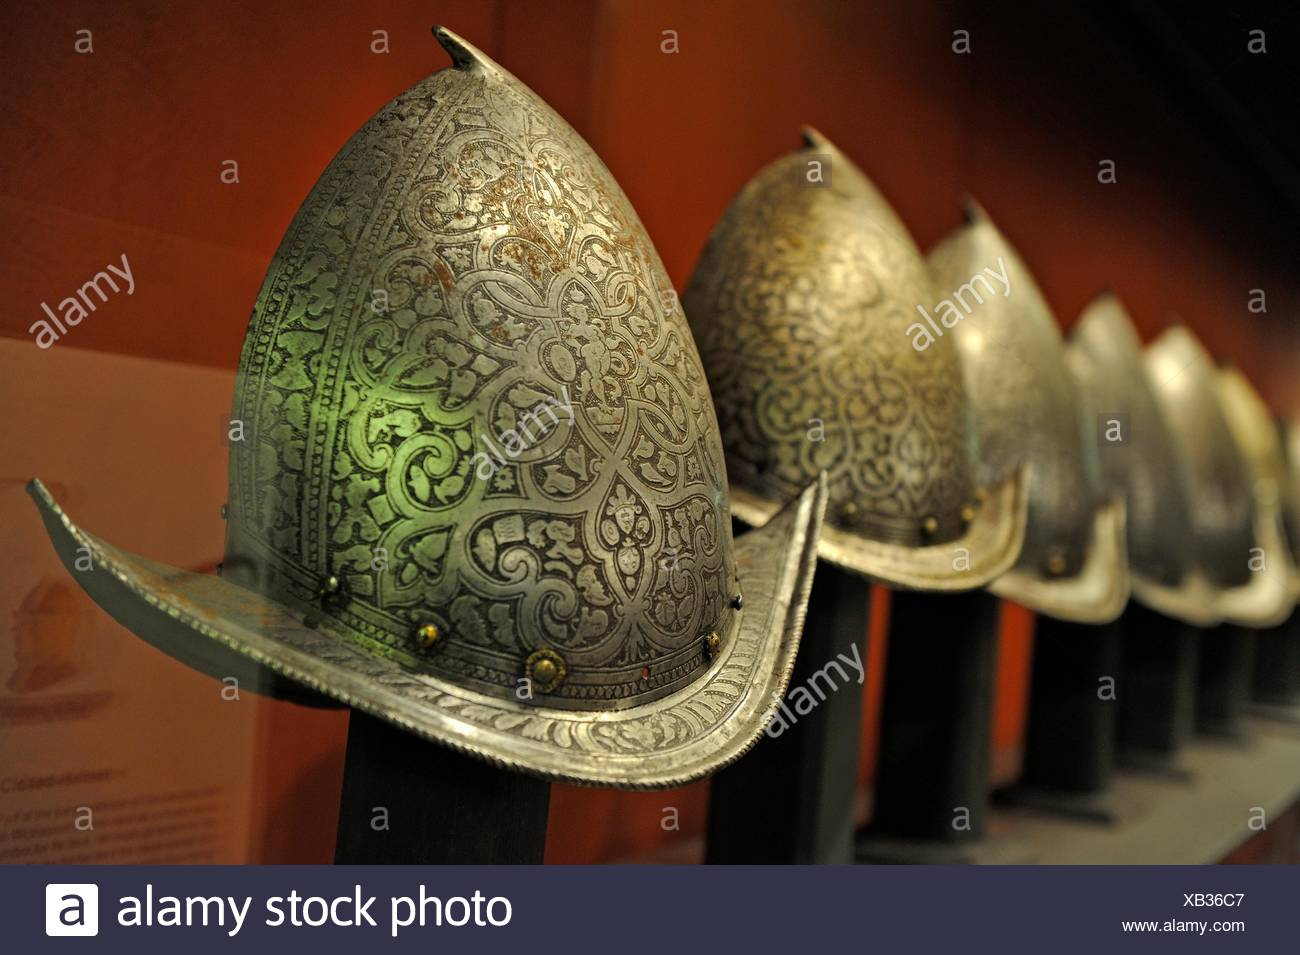 Palace Armoury, arms collection housed at the Grandmaster´s Palace, Valletta, Malta, Southern Europe. - Stock Image